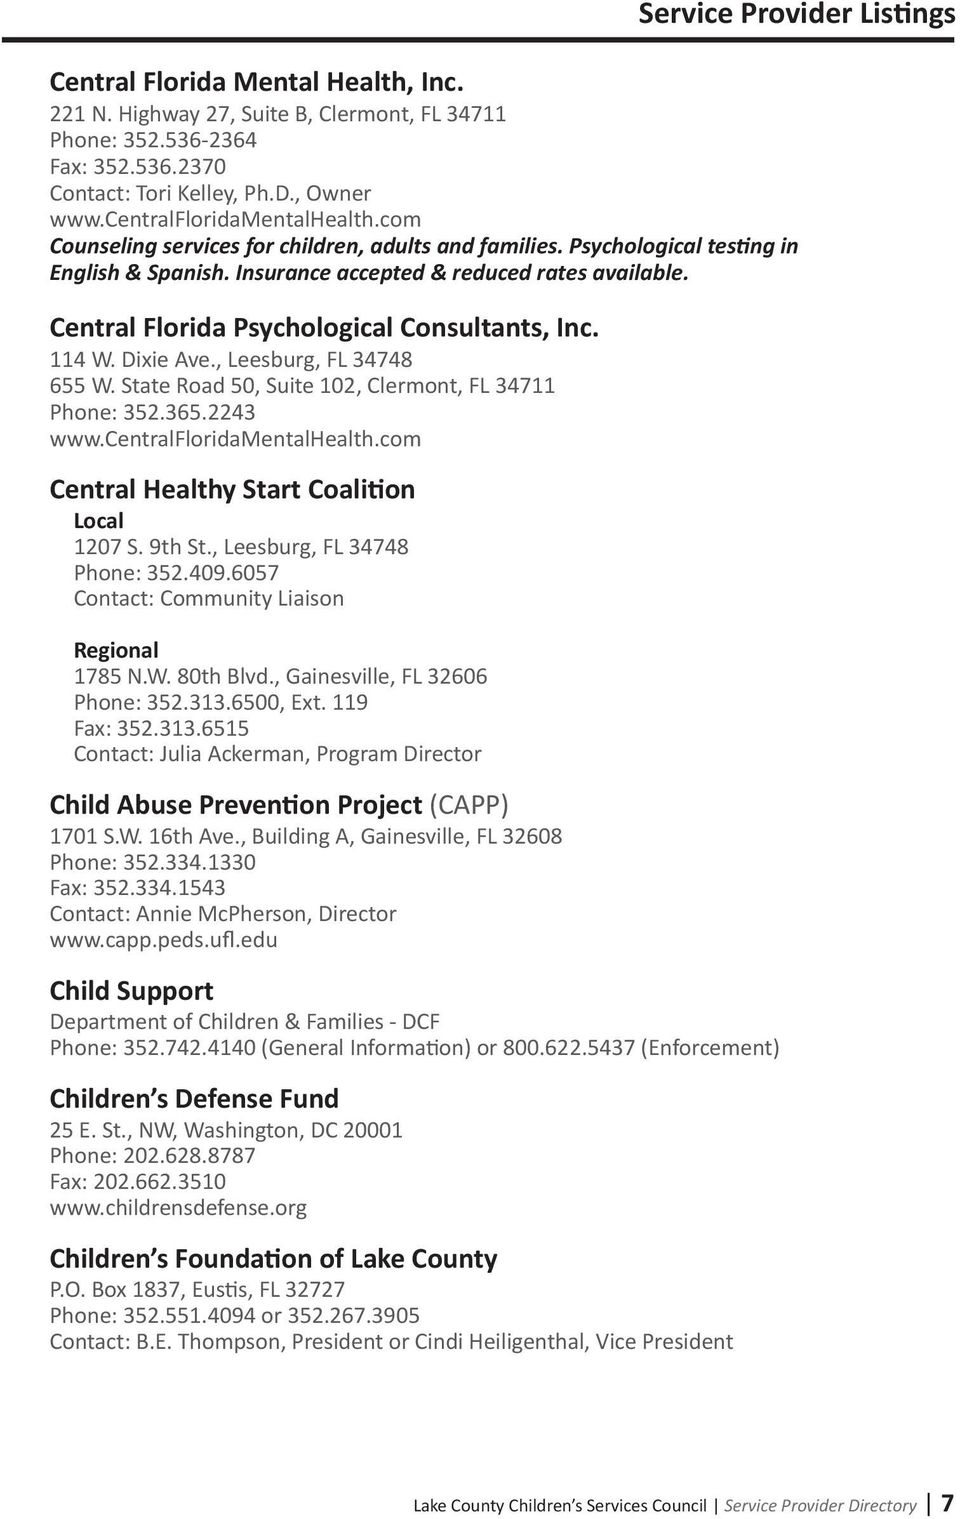 114 W. Dixie Ave., Leesburg, FL 34748 655 W. State Road 50, Suite 102, Clermont, FL 34711 Phone: 352.365.2243 www.centralfloridamentalhealth.com Central Healthy Start Coalition Local 1207 S. 9th St.